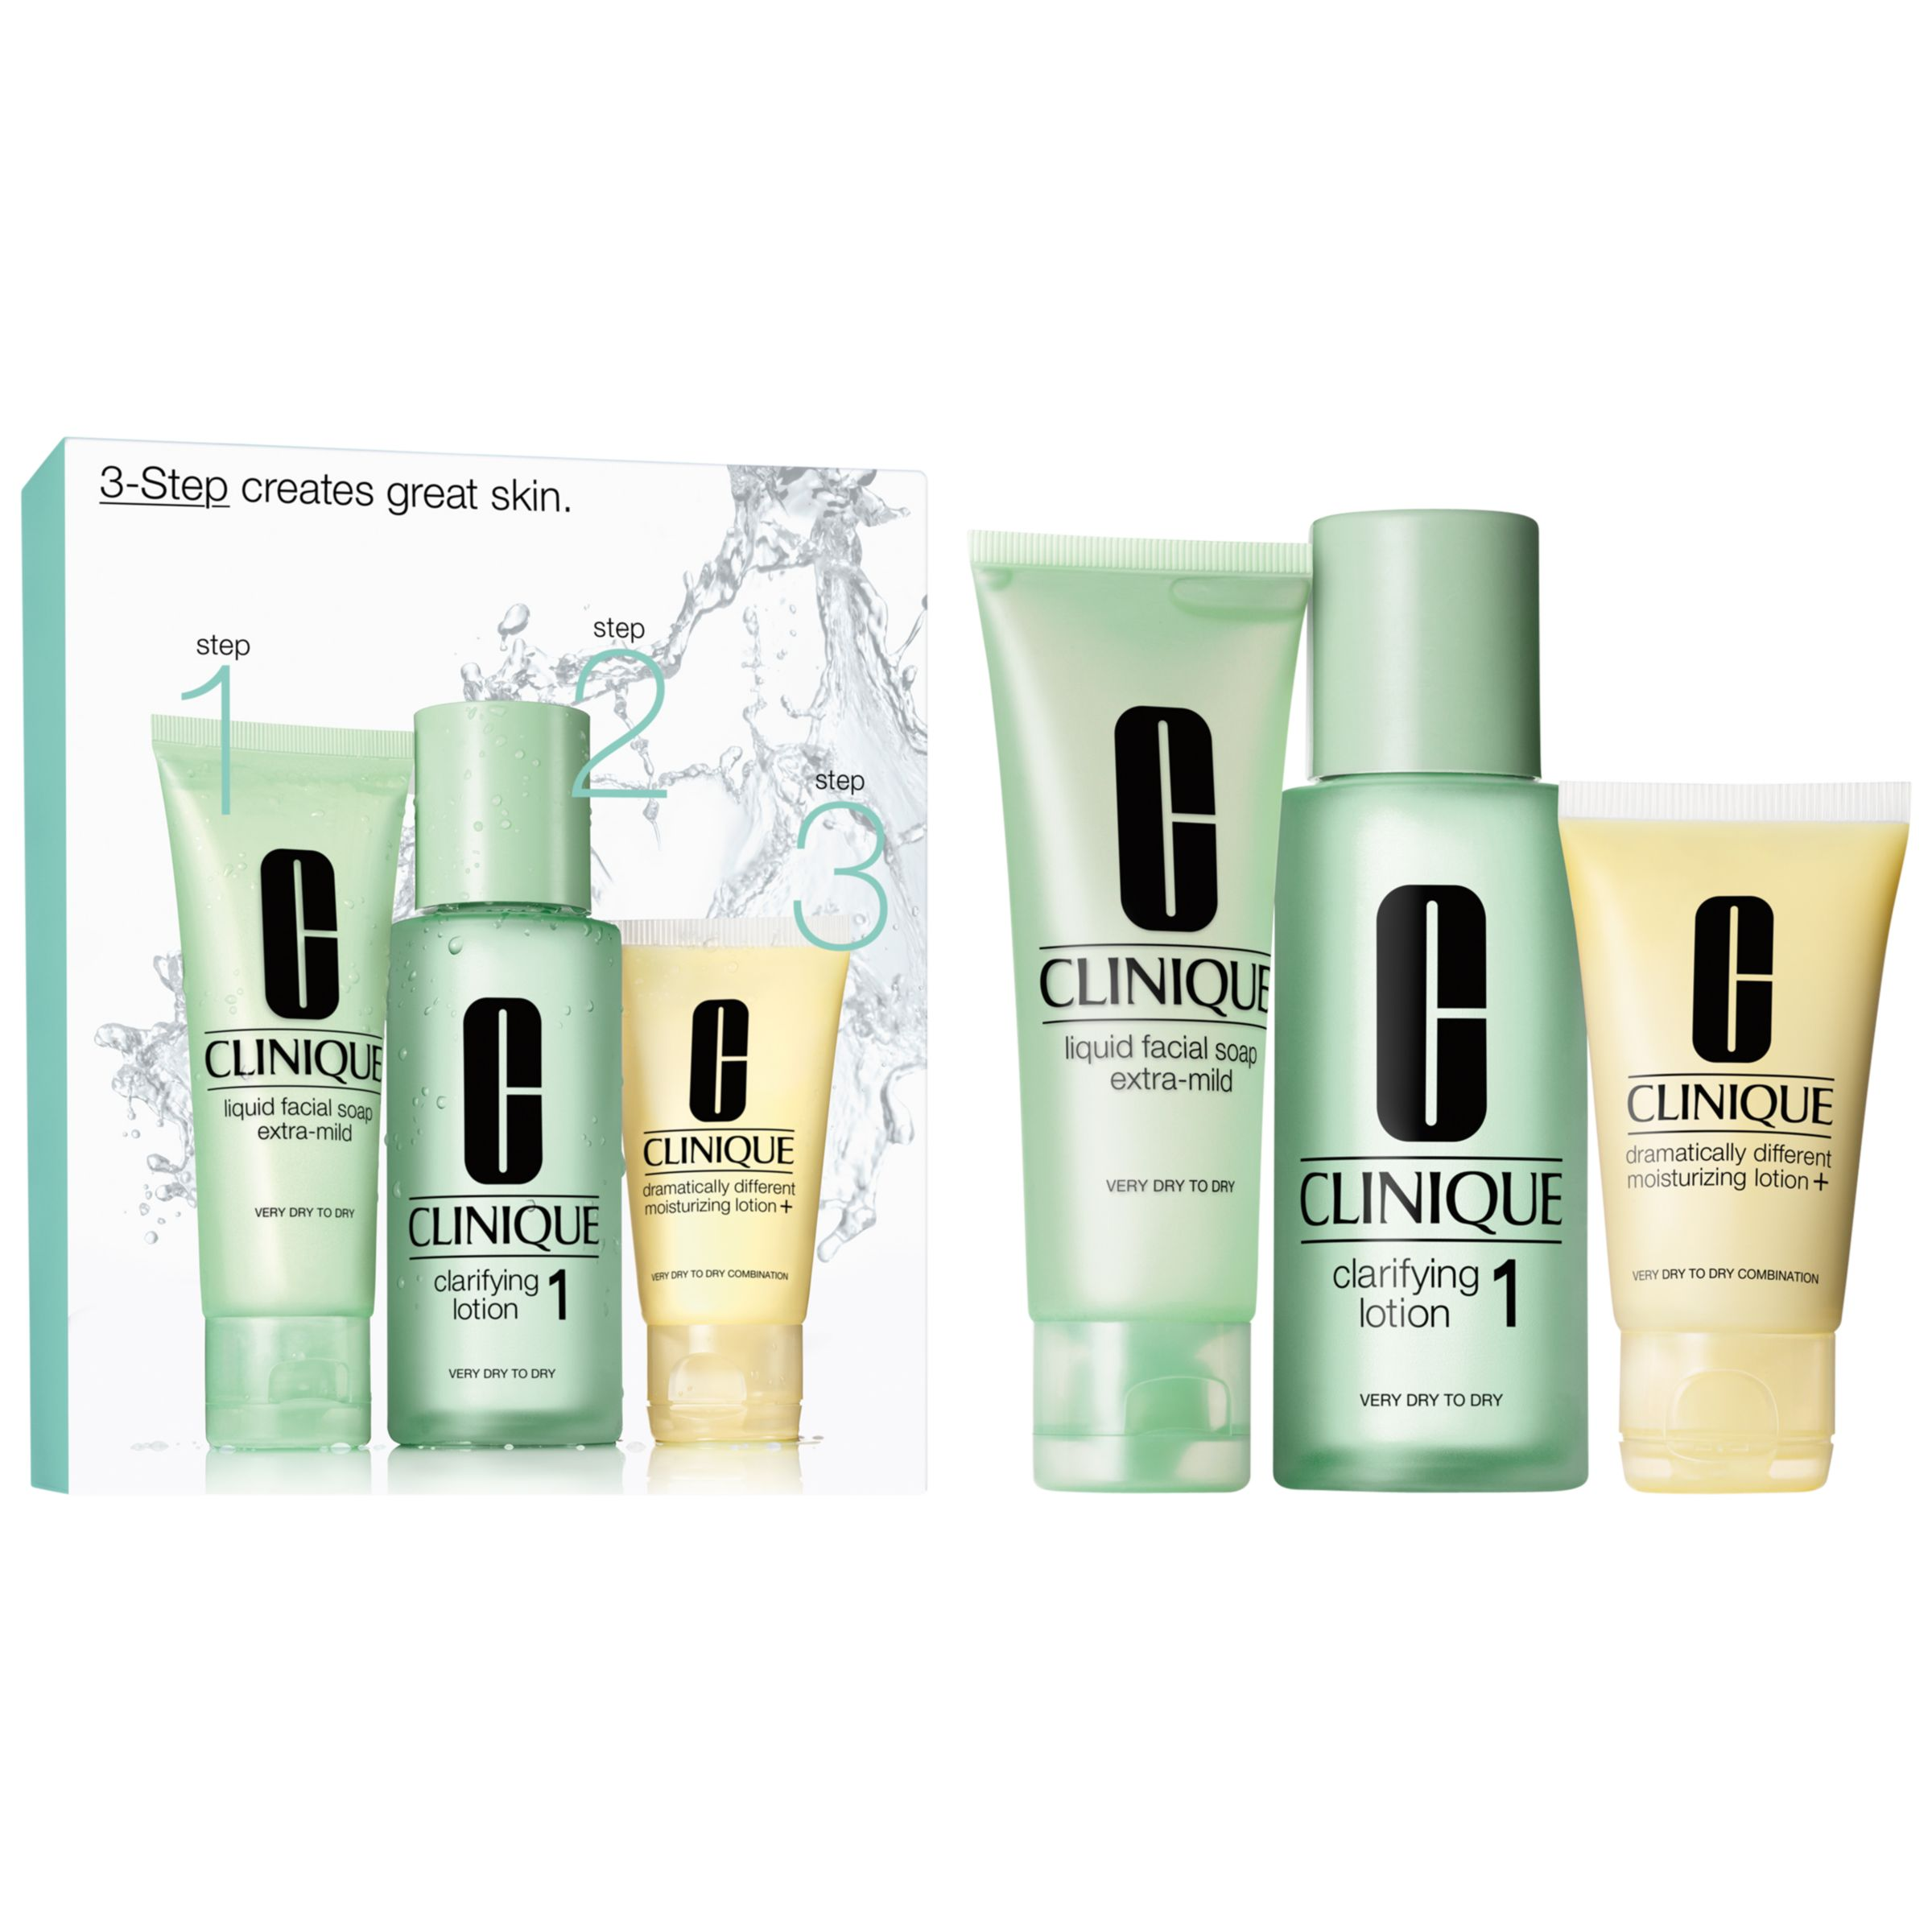 Save cheap clinique to get e-mail alerts and updates on your eBay Feed. + Items in search results Clinique Acne Face Wash For Women Acne Starter Kit Cheap Beauty Product Cleansor.